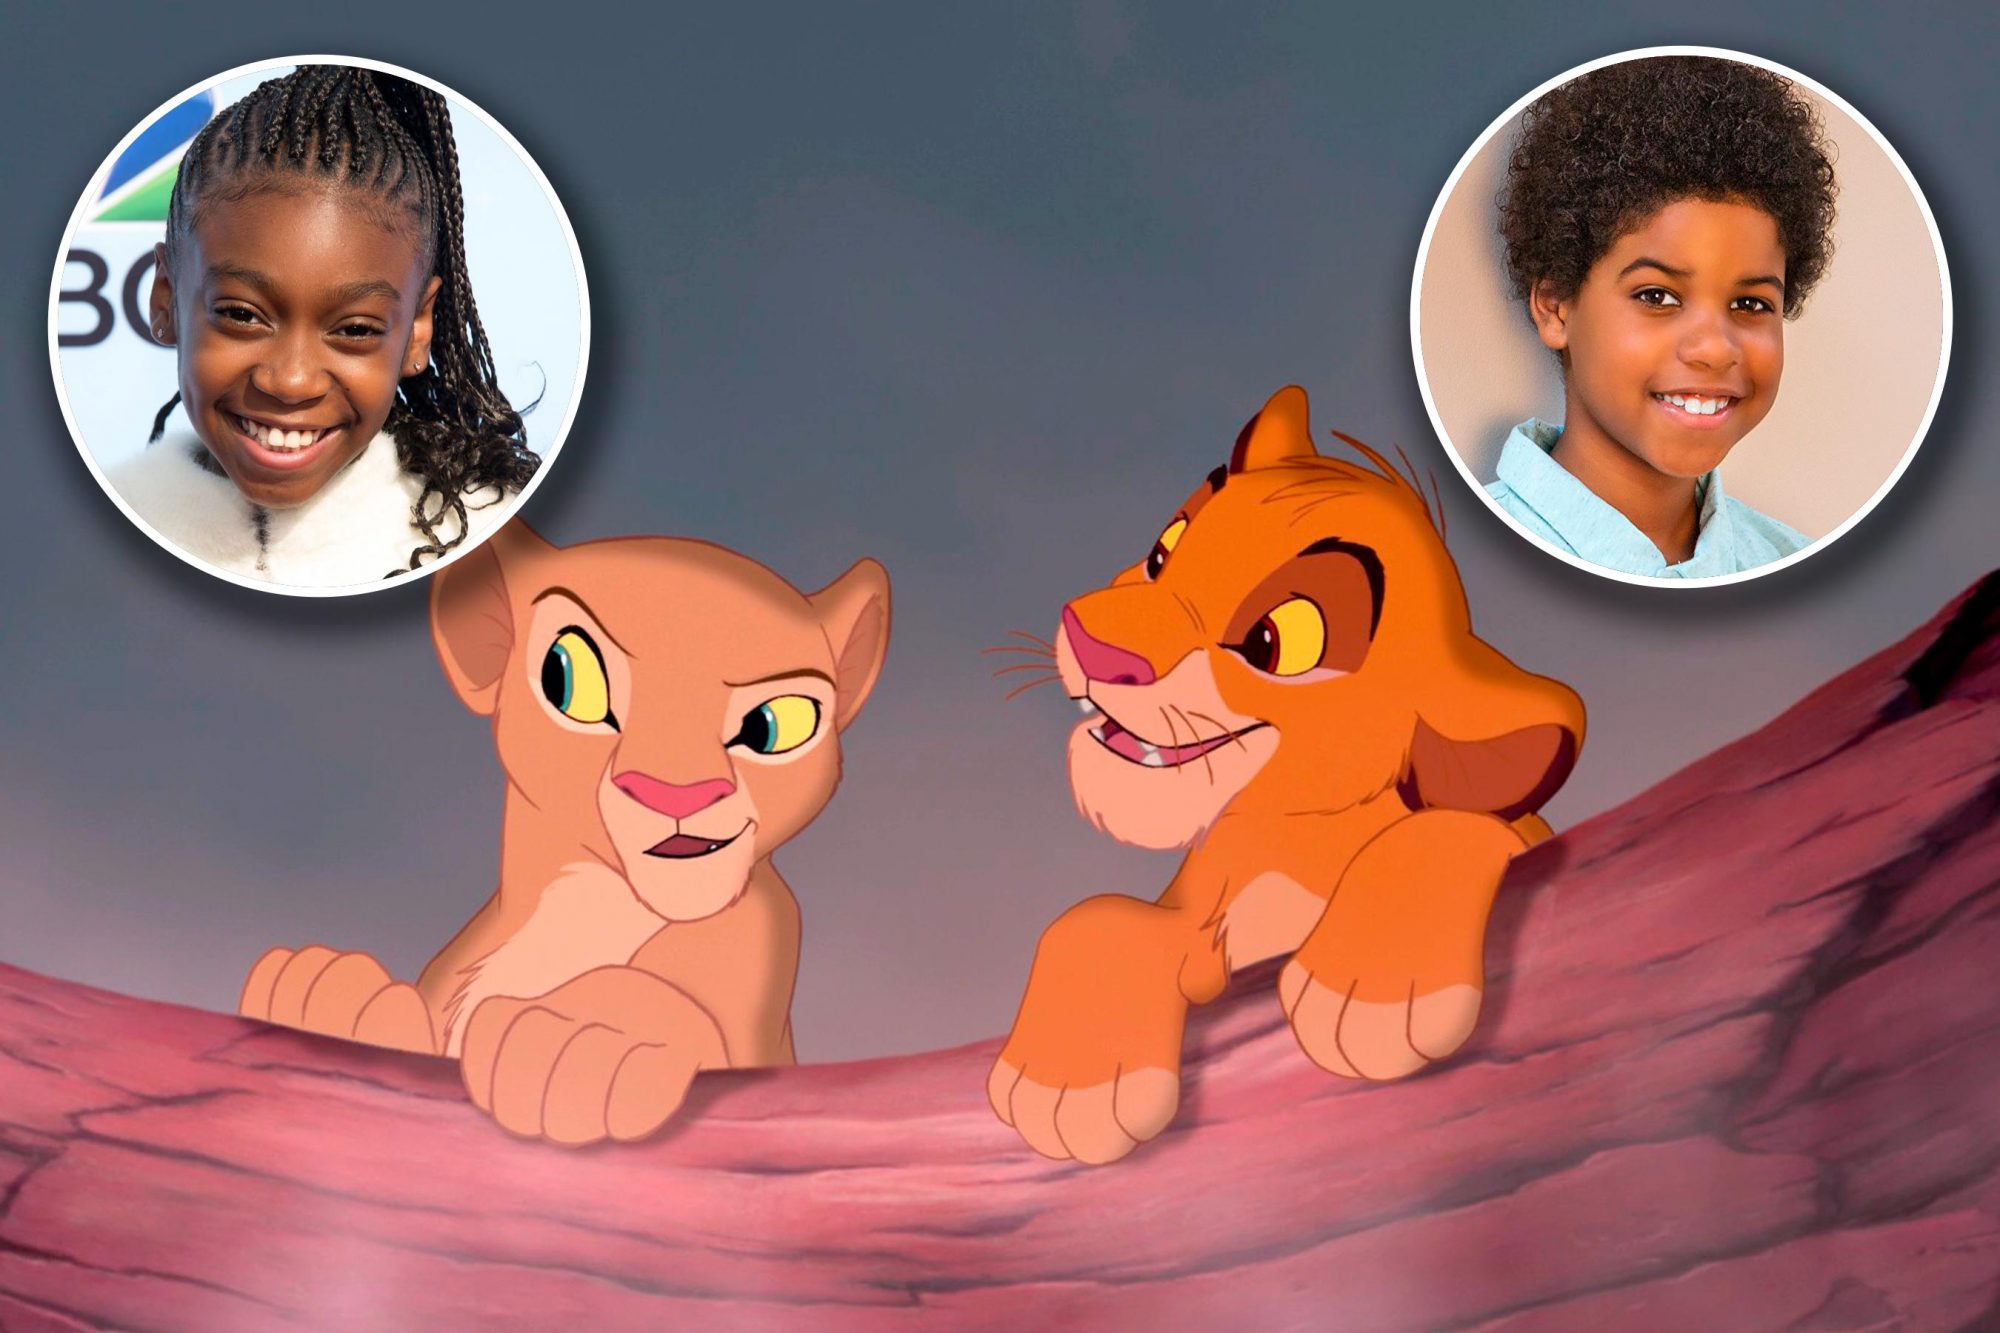 Shahadi Wright Joseph and JD McCrary as Young Nala and Young Simba